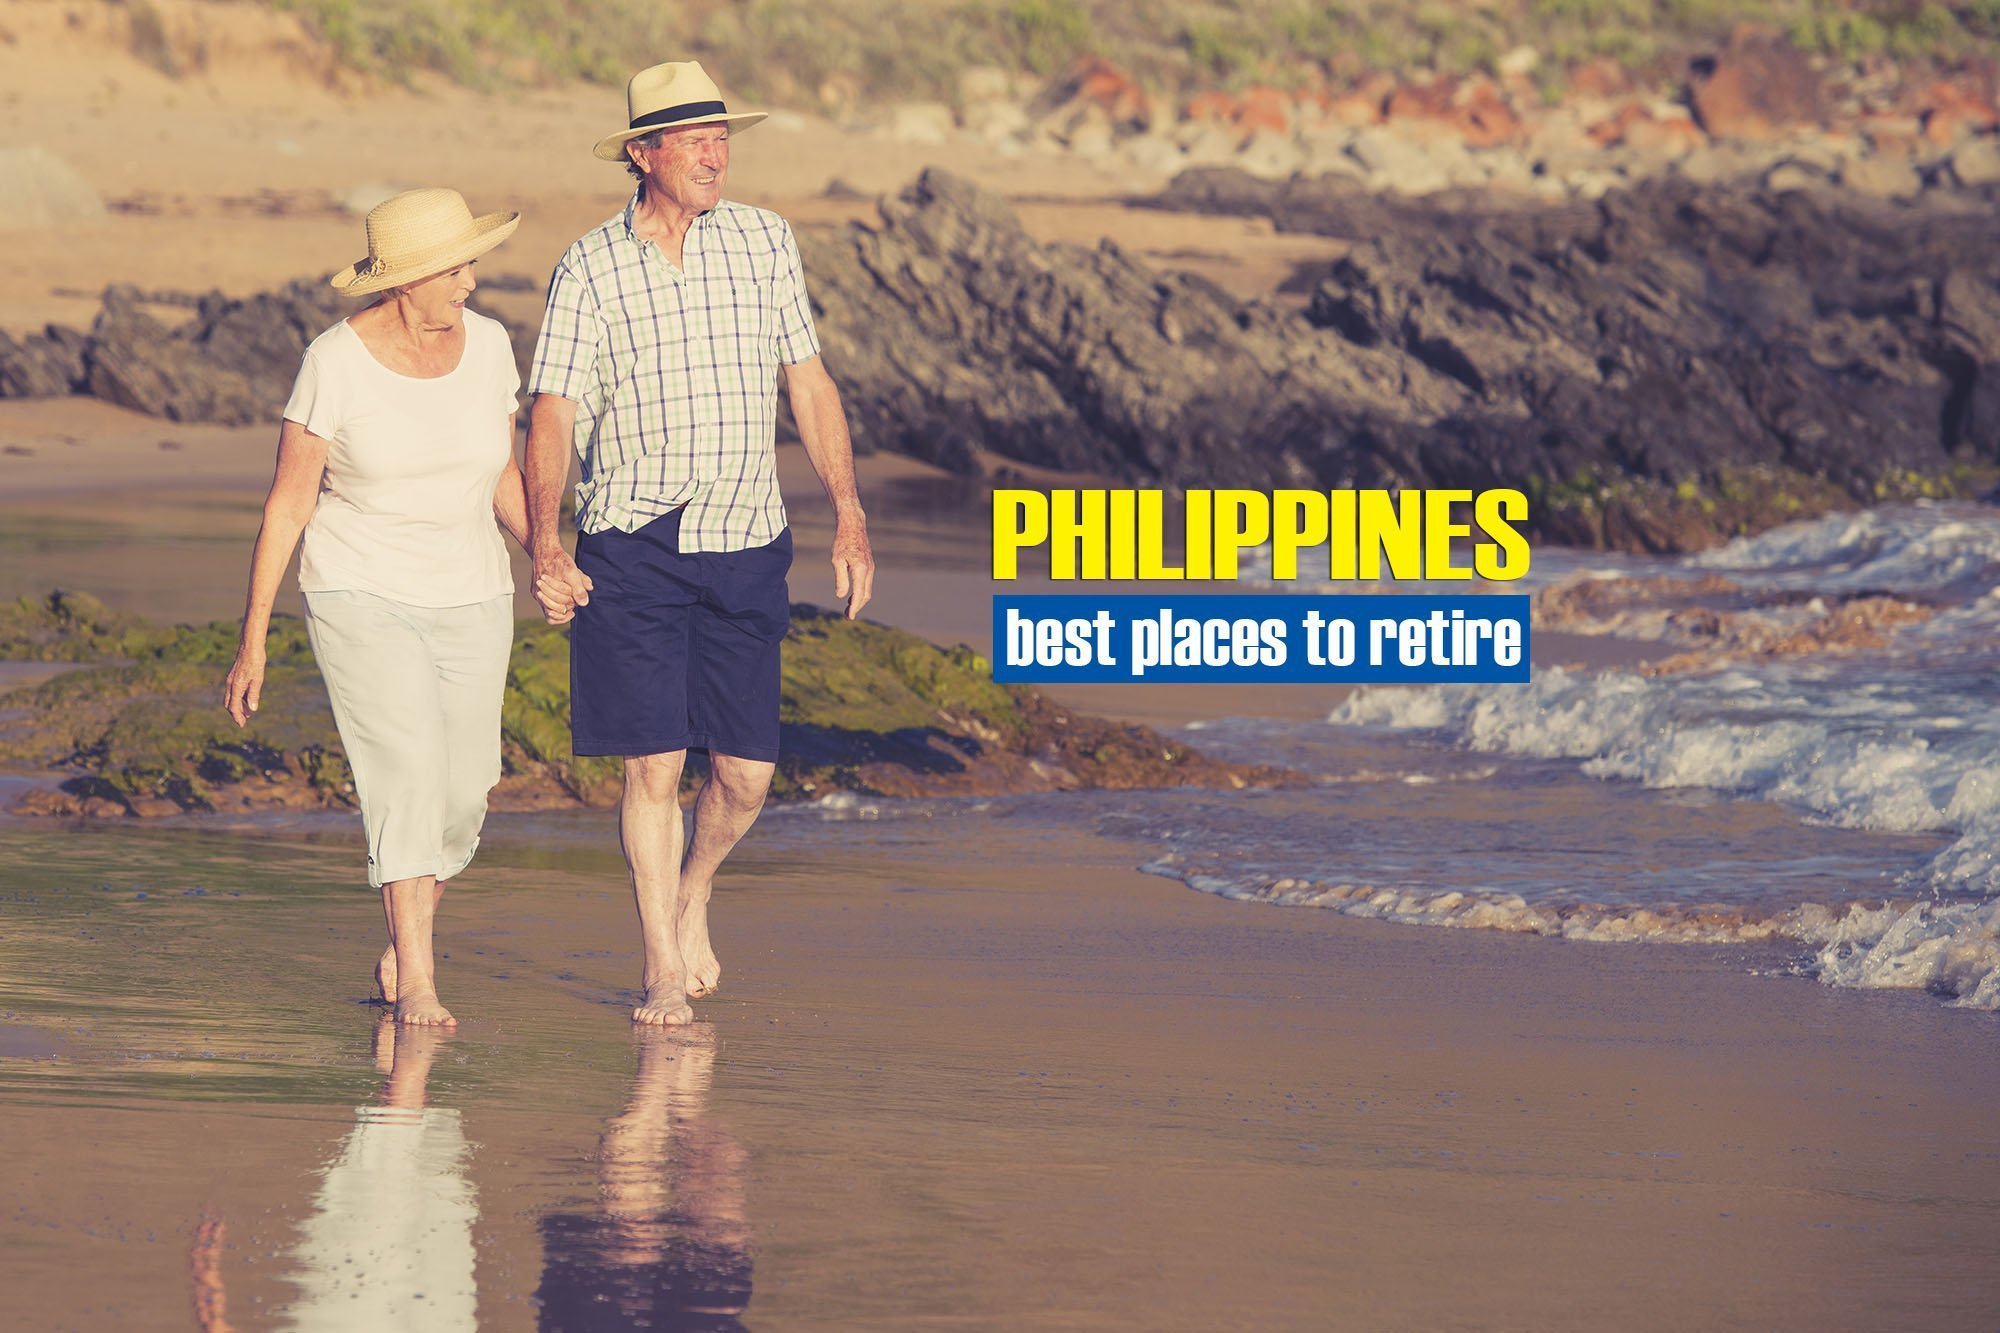 5 Best Places to Retire in the Philippines